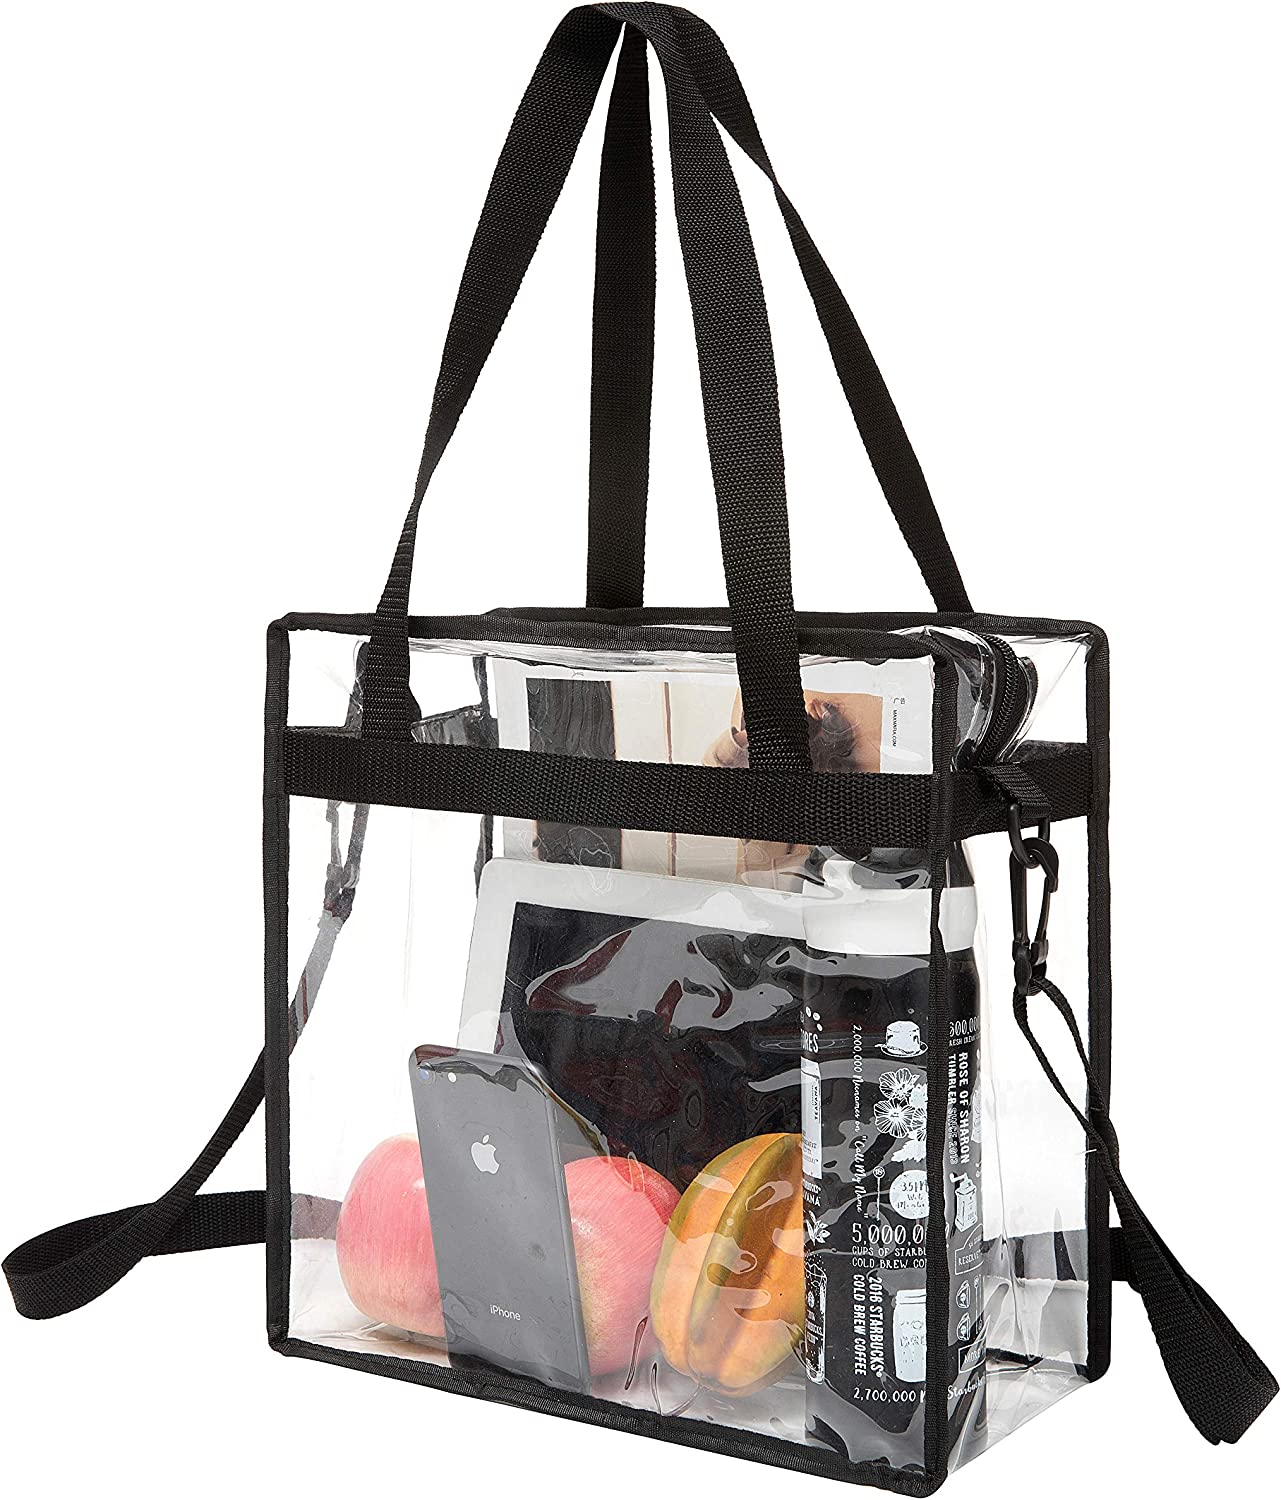 BAGAIL NFL and PGA Stadium Approved Clear Tote Bag with Zipper